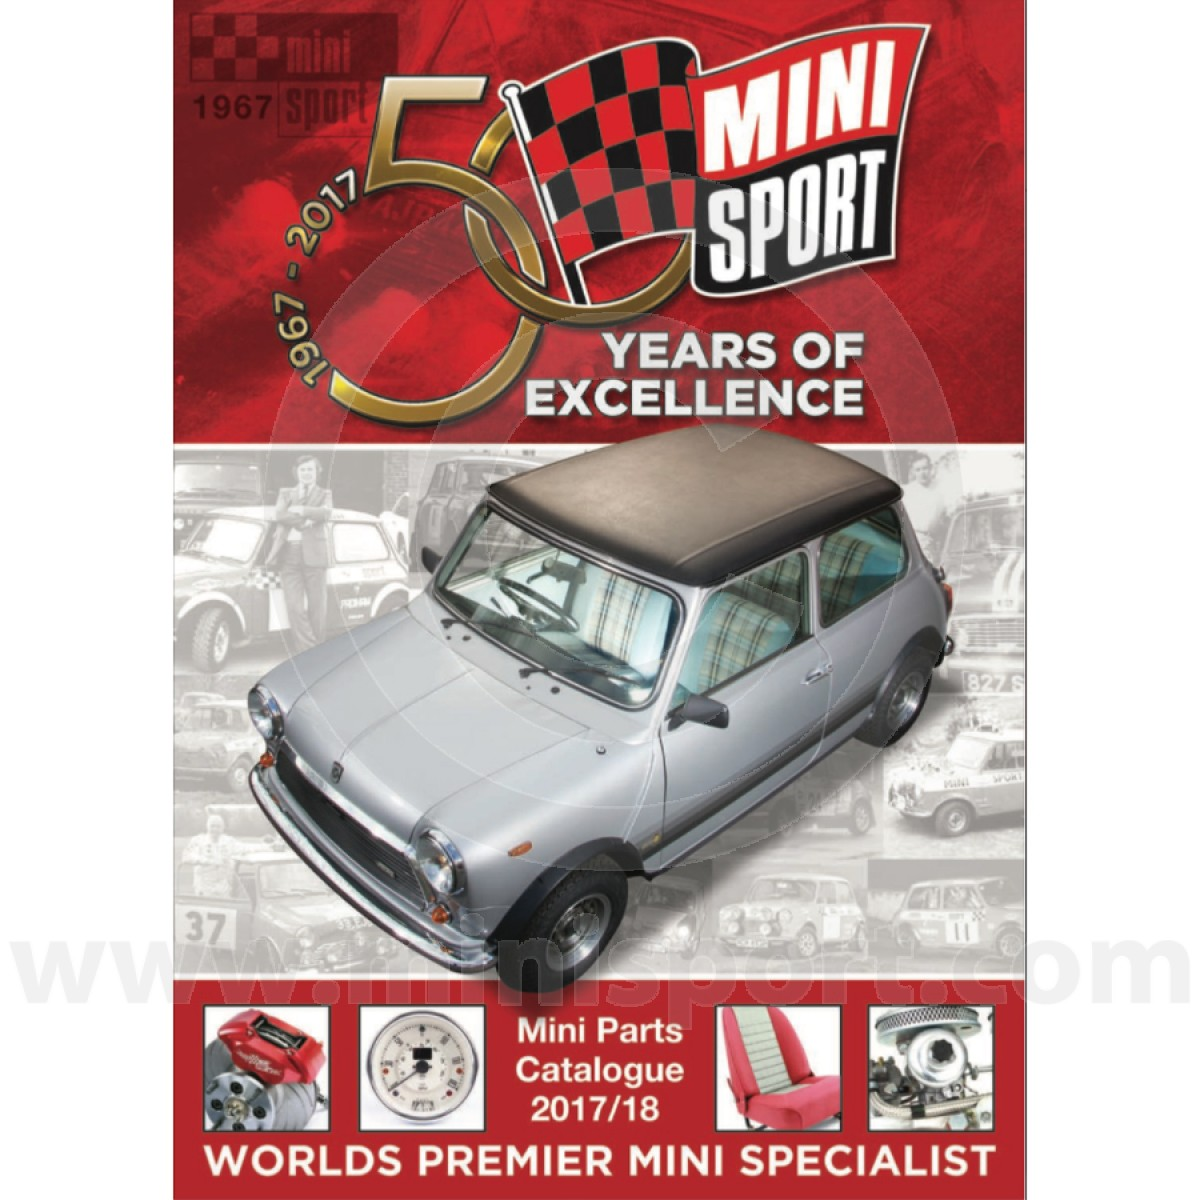 Mini Sport Catalogue 2017 Mini Catalogues Minisportcom Mini Sport